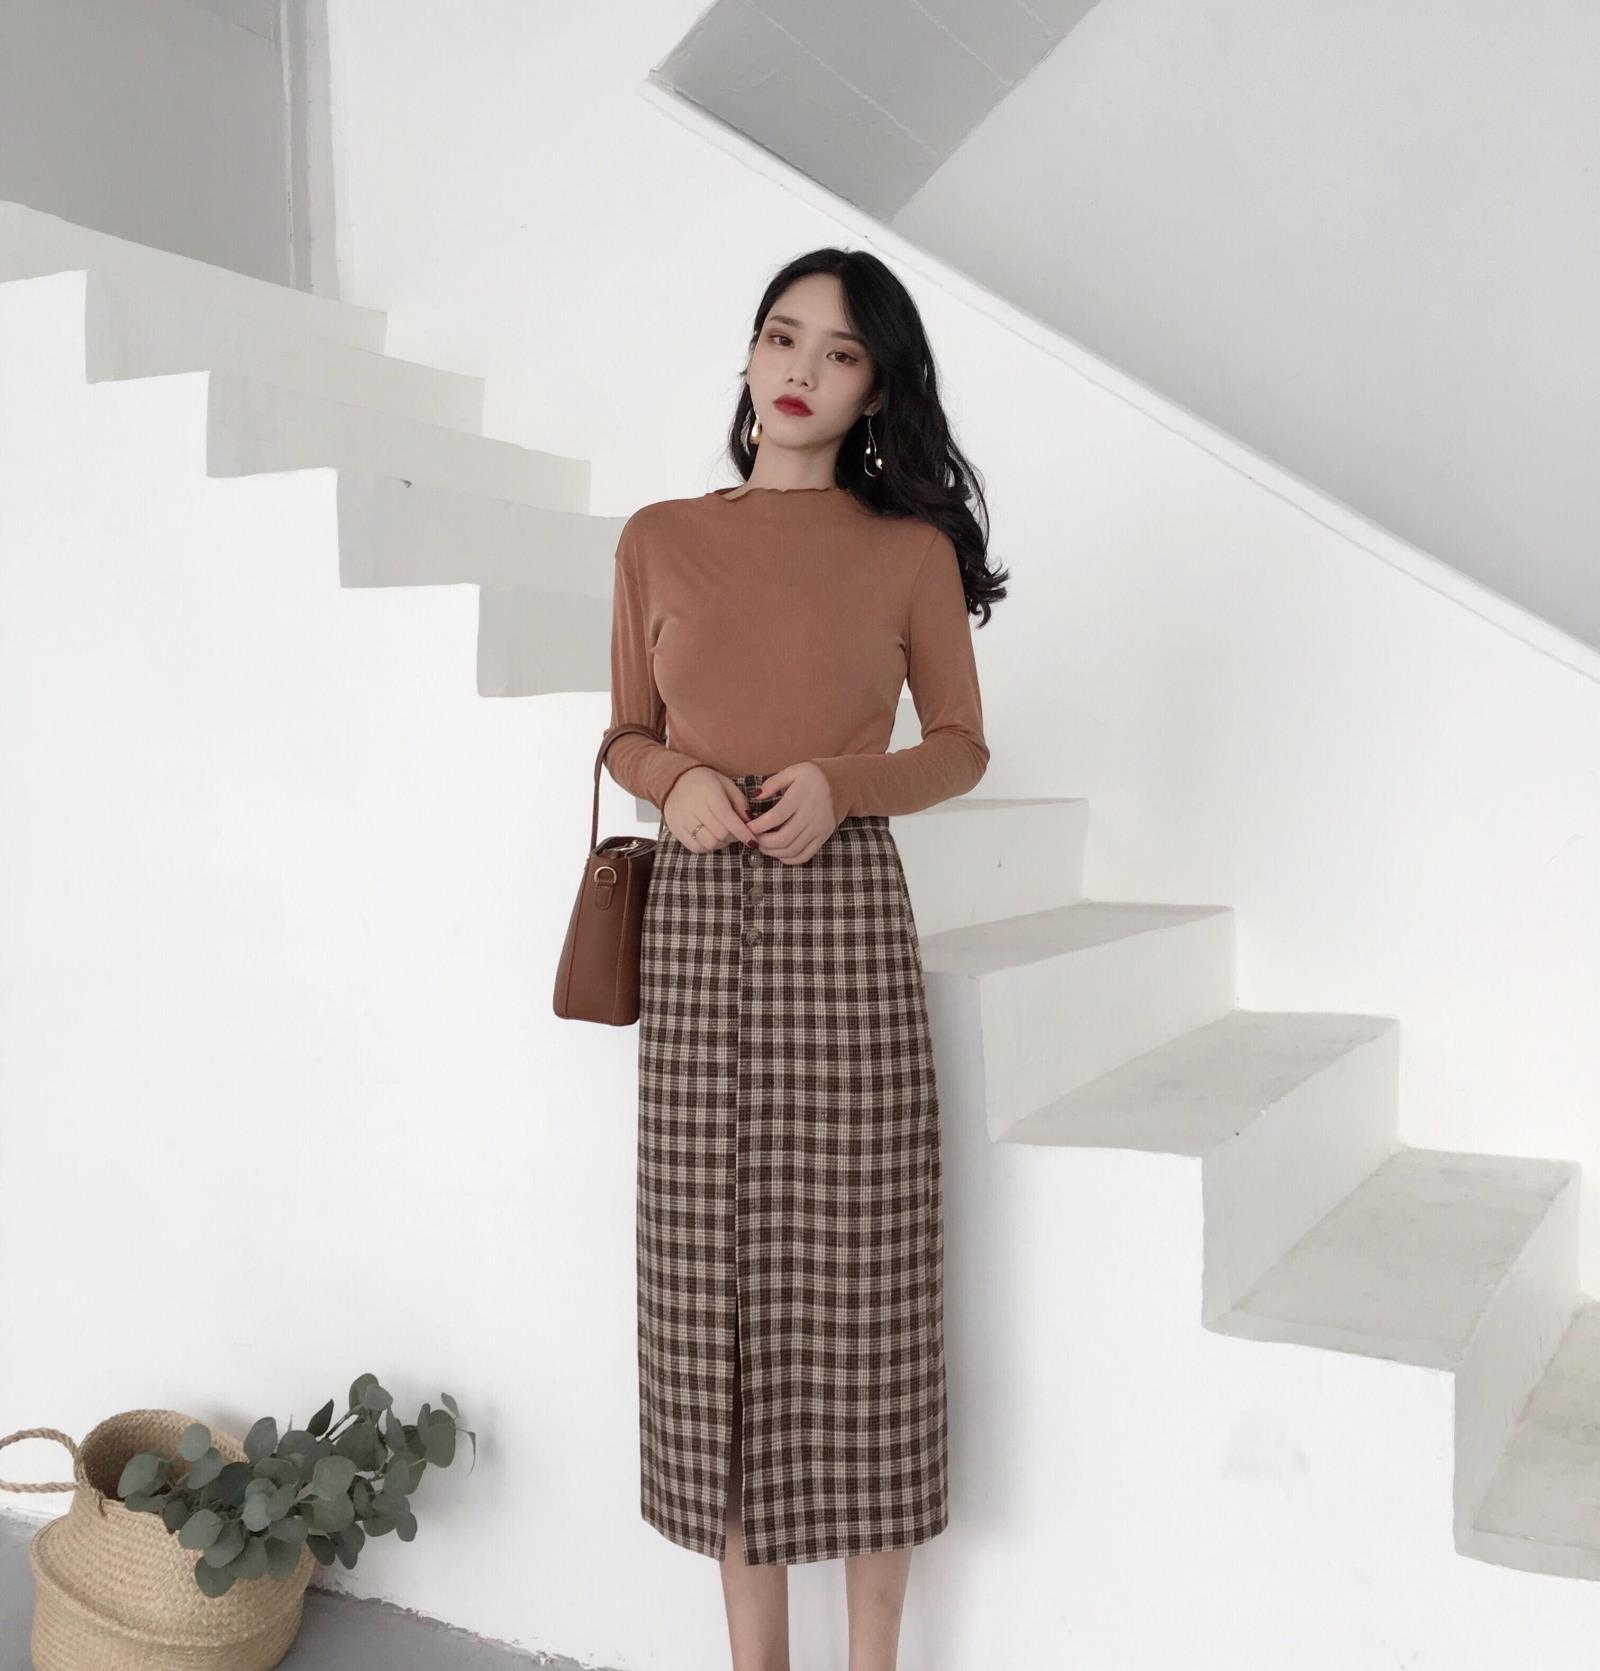 Photo Shoot Retro Hong Kong Flavor CHIC Elastic Elasticity Waist Slit Hemline At Hem Woolen Plaid Medium-length Skirt Versatile